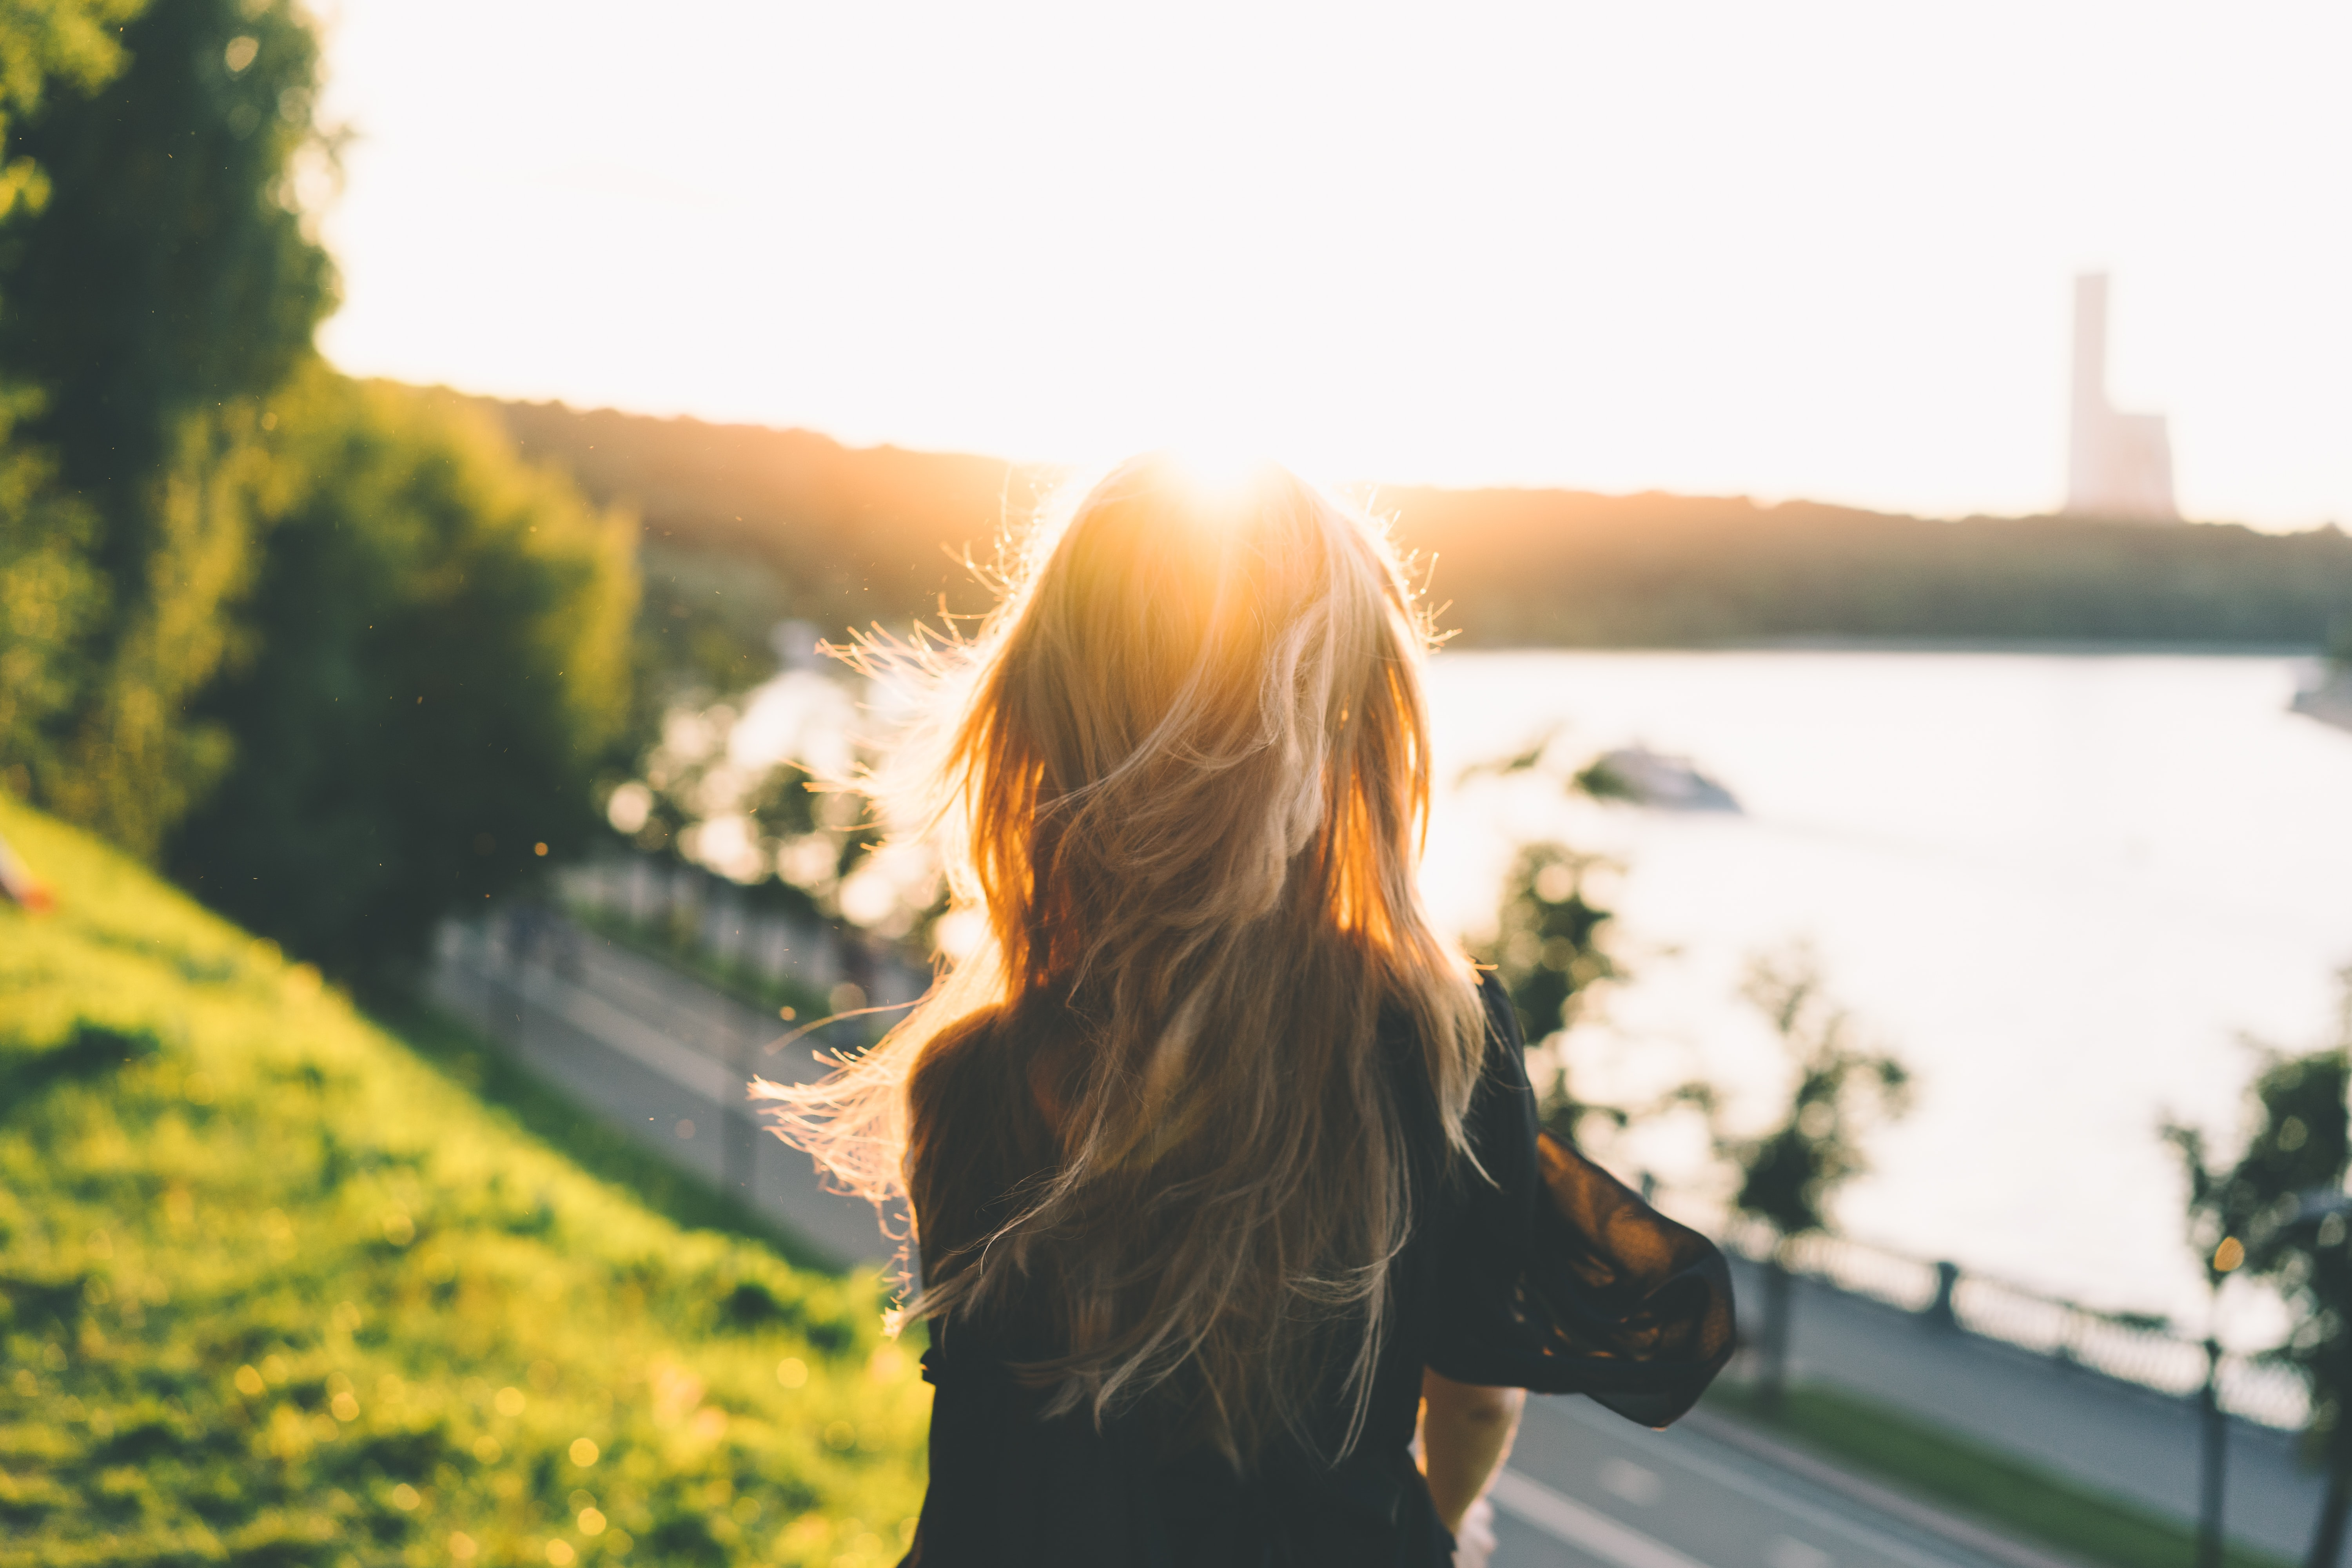 A woman standing on a hill, looking towards the sun.